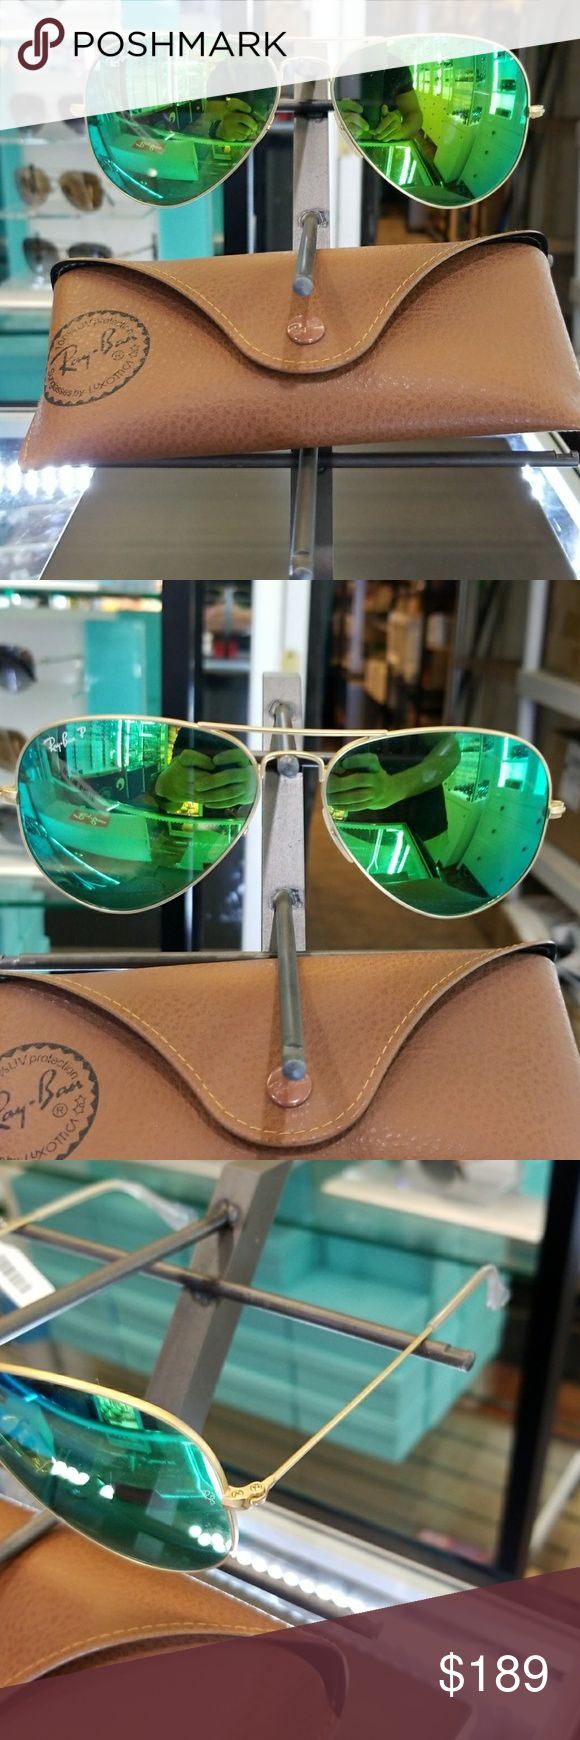 Ray ban 3025 aviators polarized lens 3025 ray ban green polarized size 58 authentic with warranty Ray-Ban Accessories Sunglasses